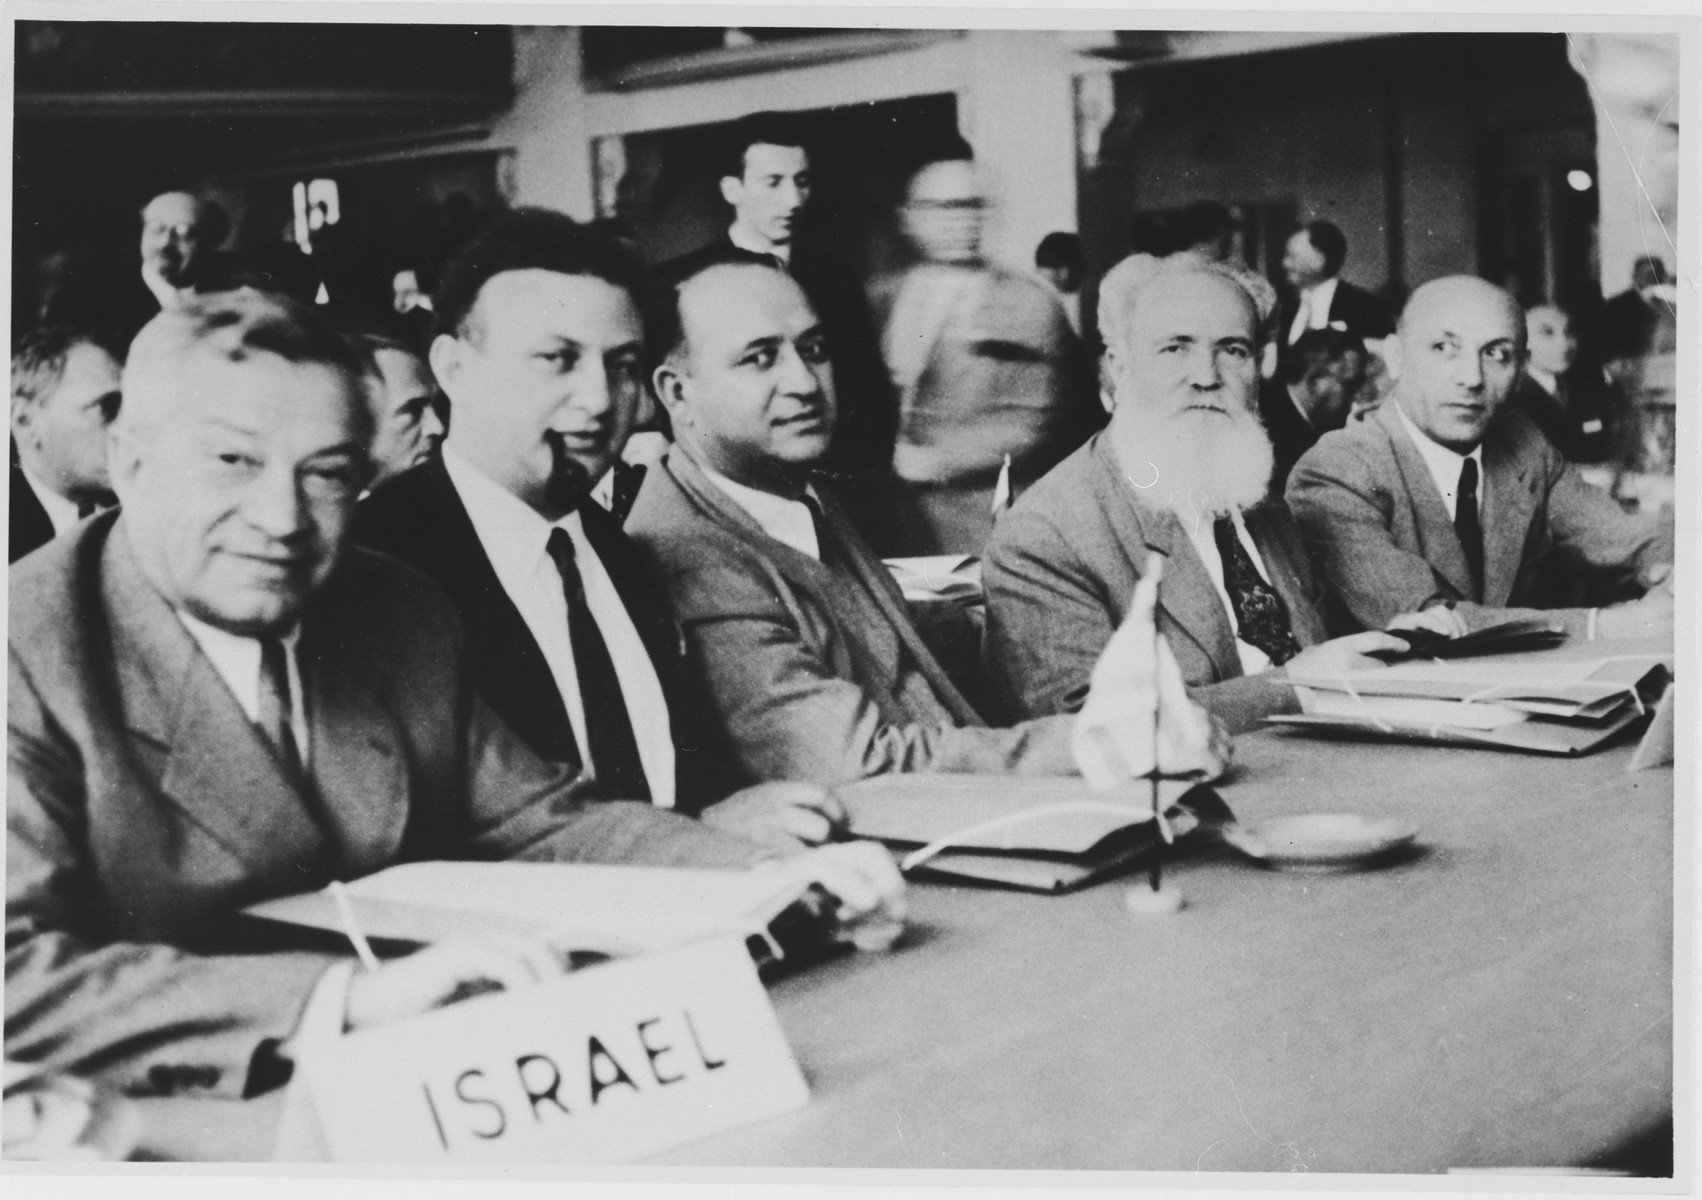 Members of the Israeli delegation to the World Jewish Congress meeting in Montreux, Switzerland.  Among those pictured is Jacob Zerubavel (second from the right).